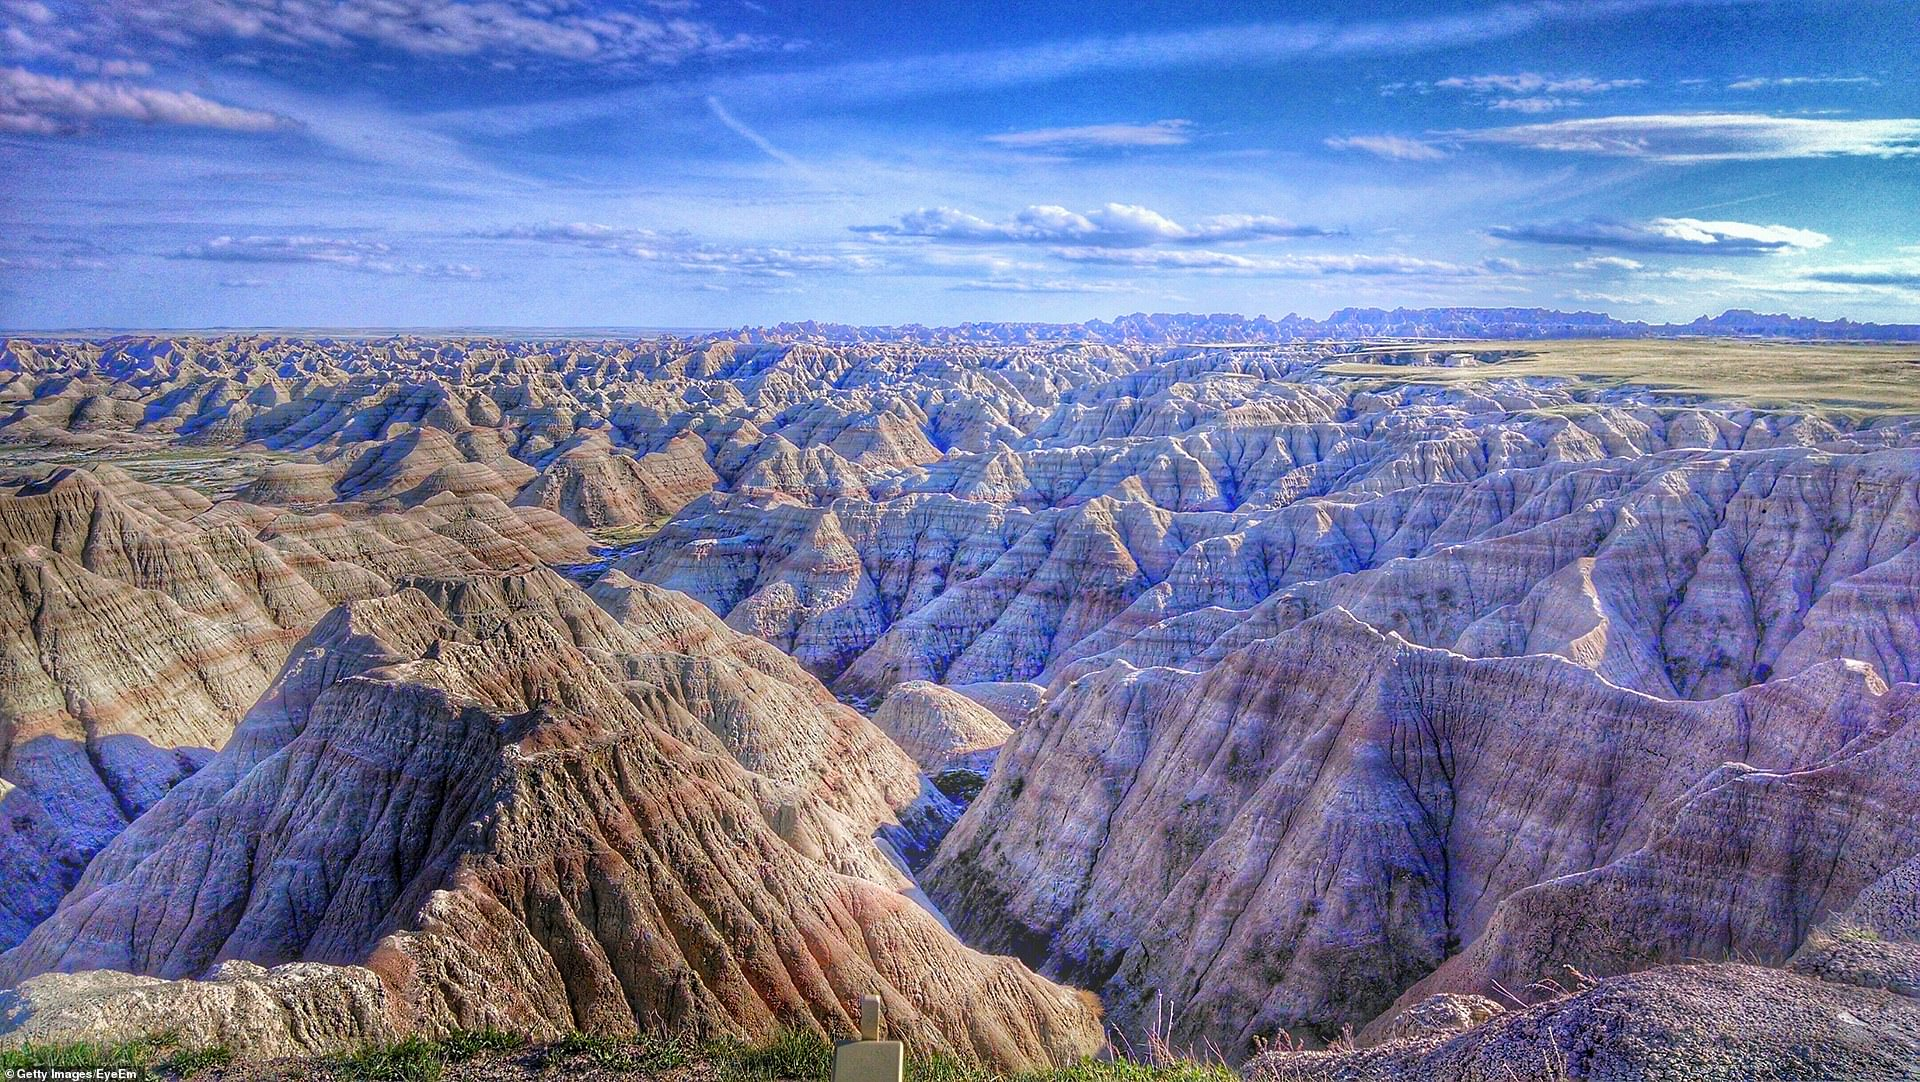 south_dakota_s_badlands_national_park.jpg